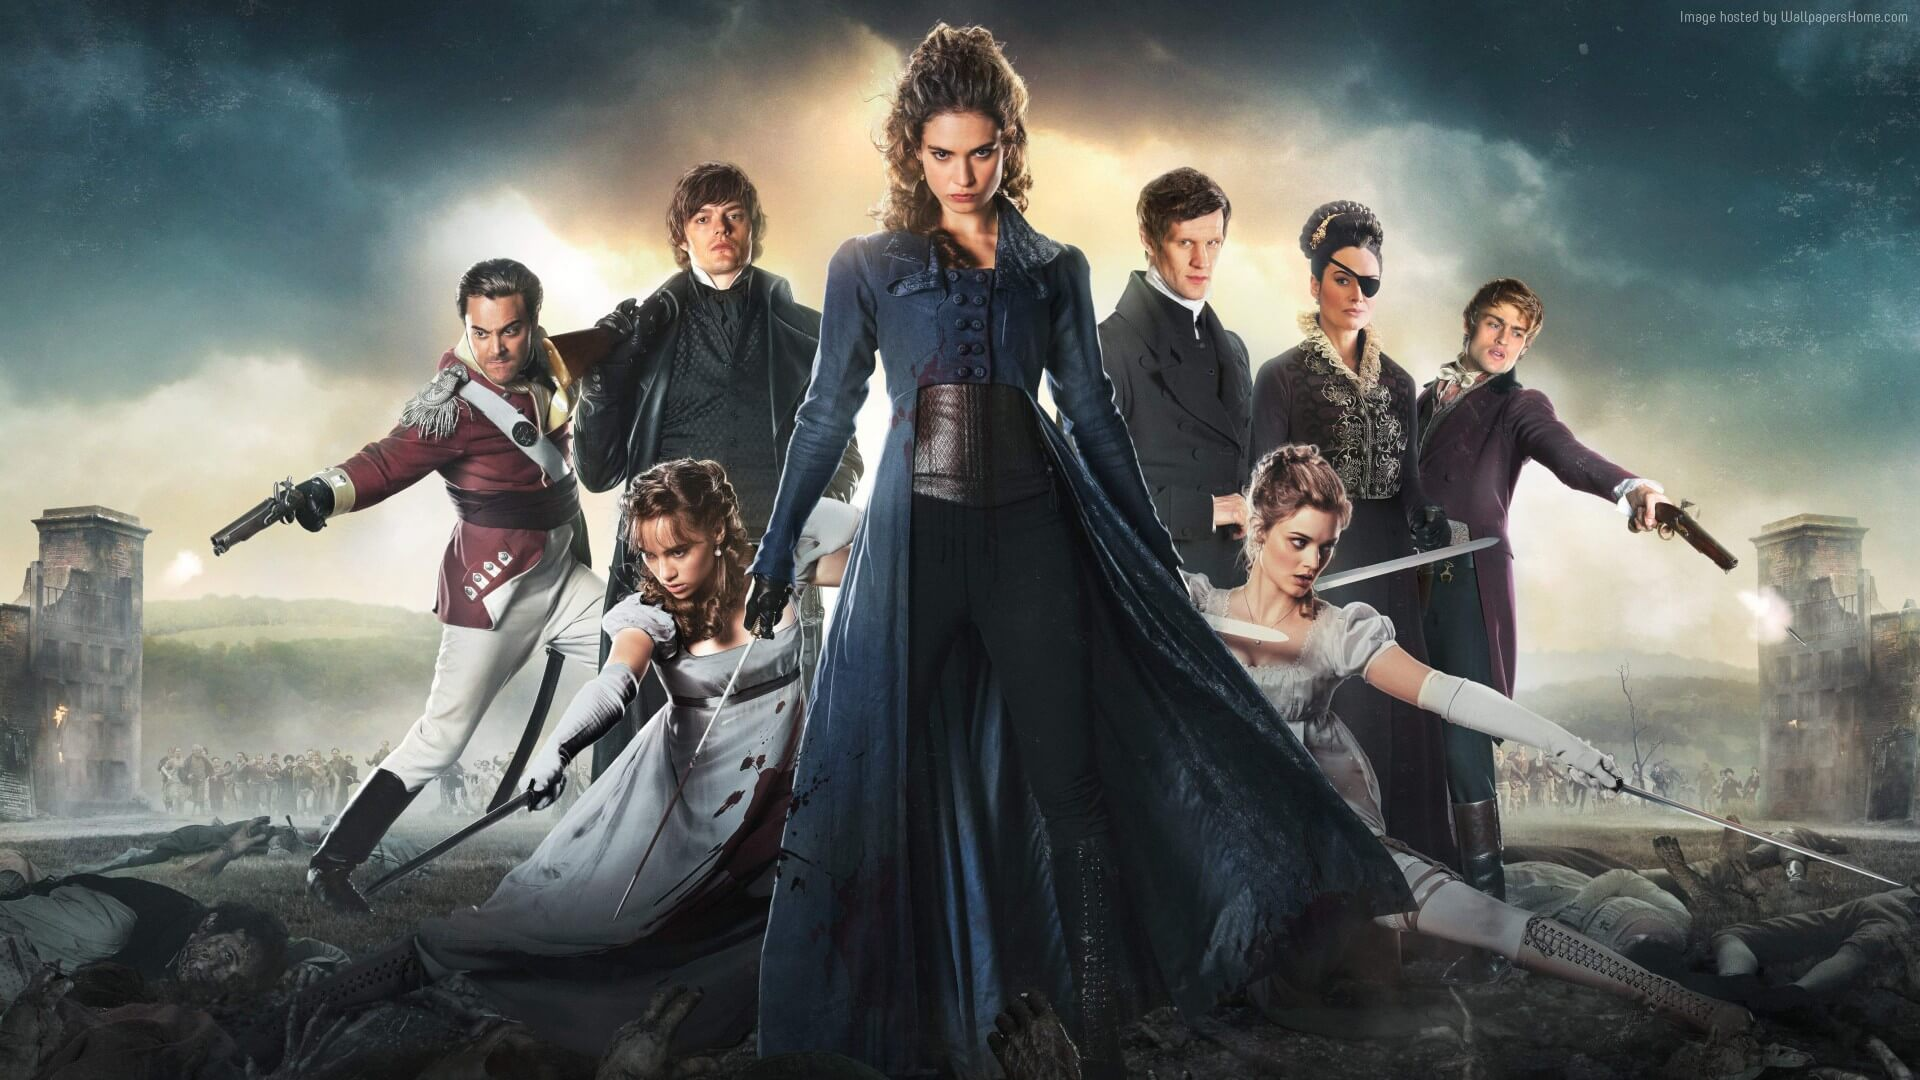 pride and prejudice and zombies review the nerd stash pride and prejudice and zombies review